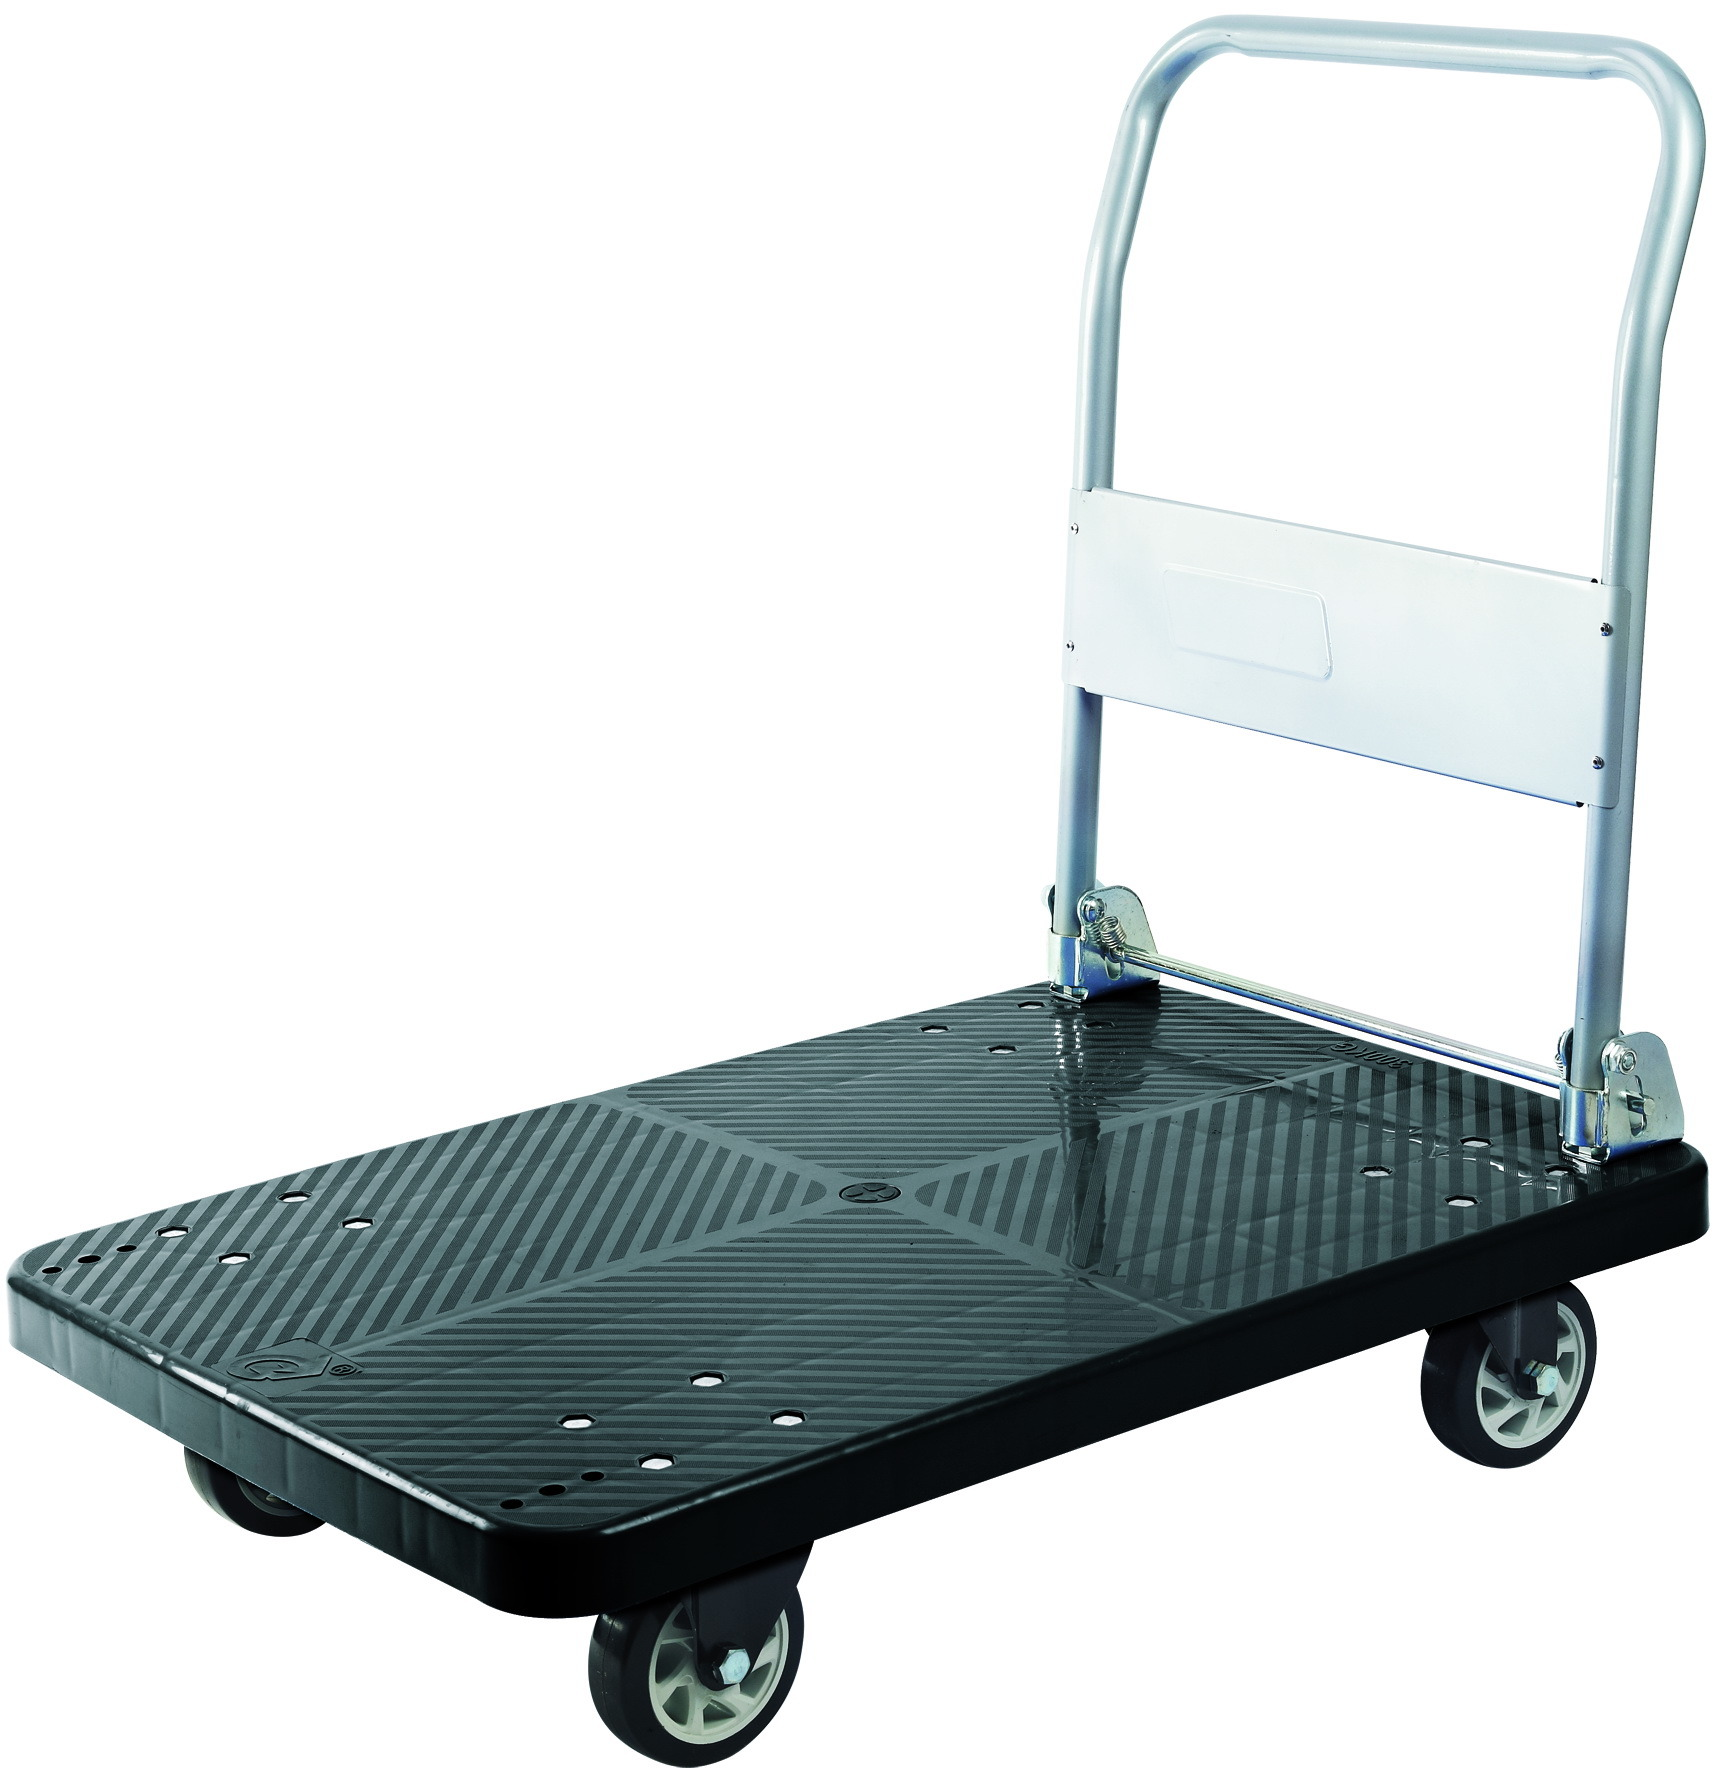 300kg Black Plastic Platform Hand Truck Foldable Noiseless Trolley